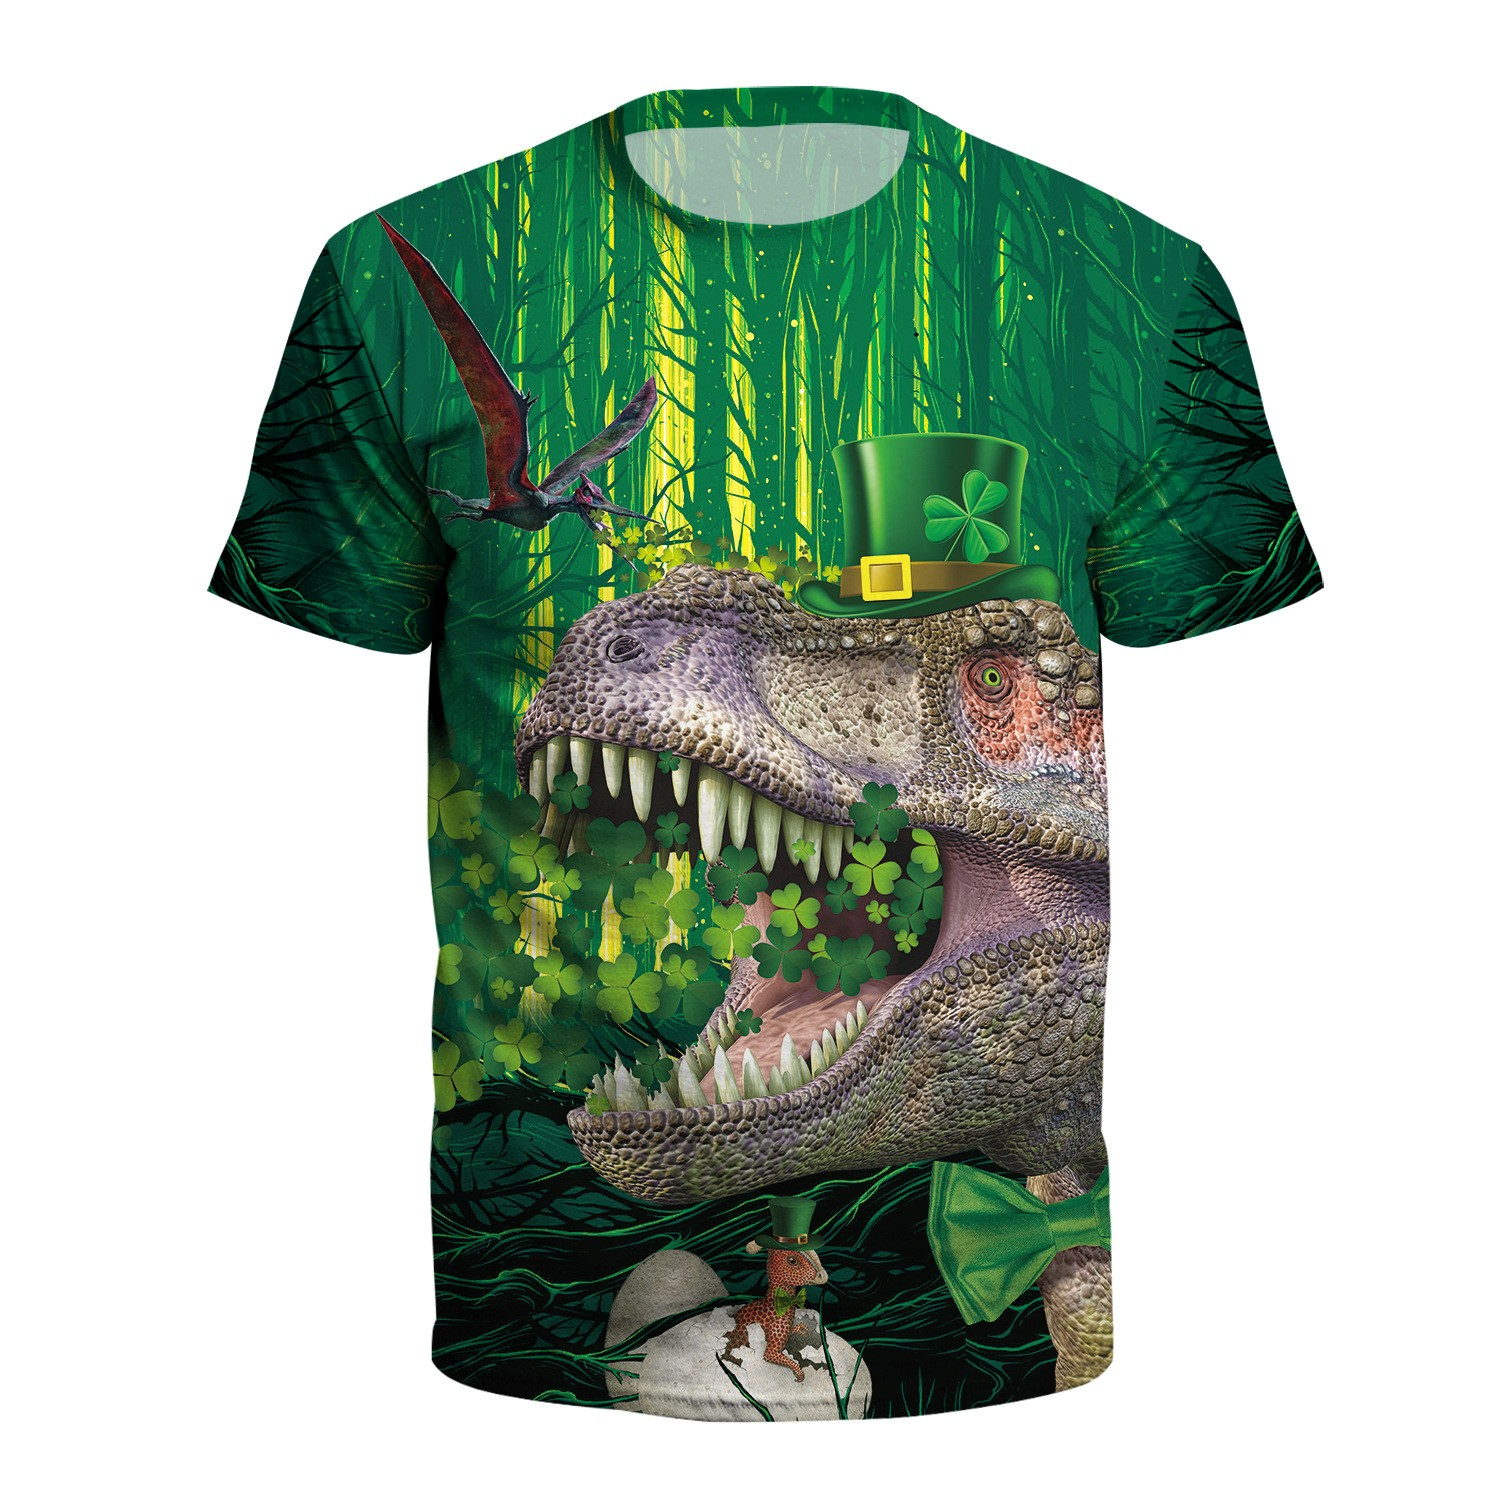 3D Digital Print Large Size Short Sleeve T-Shirt show